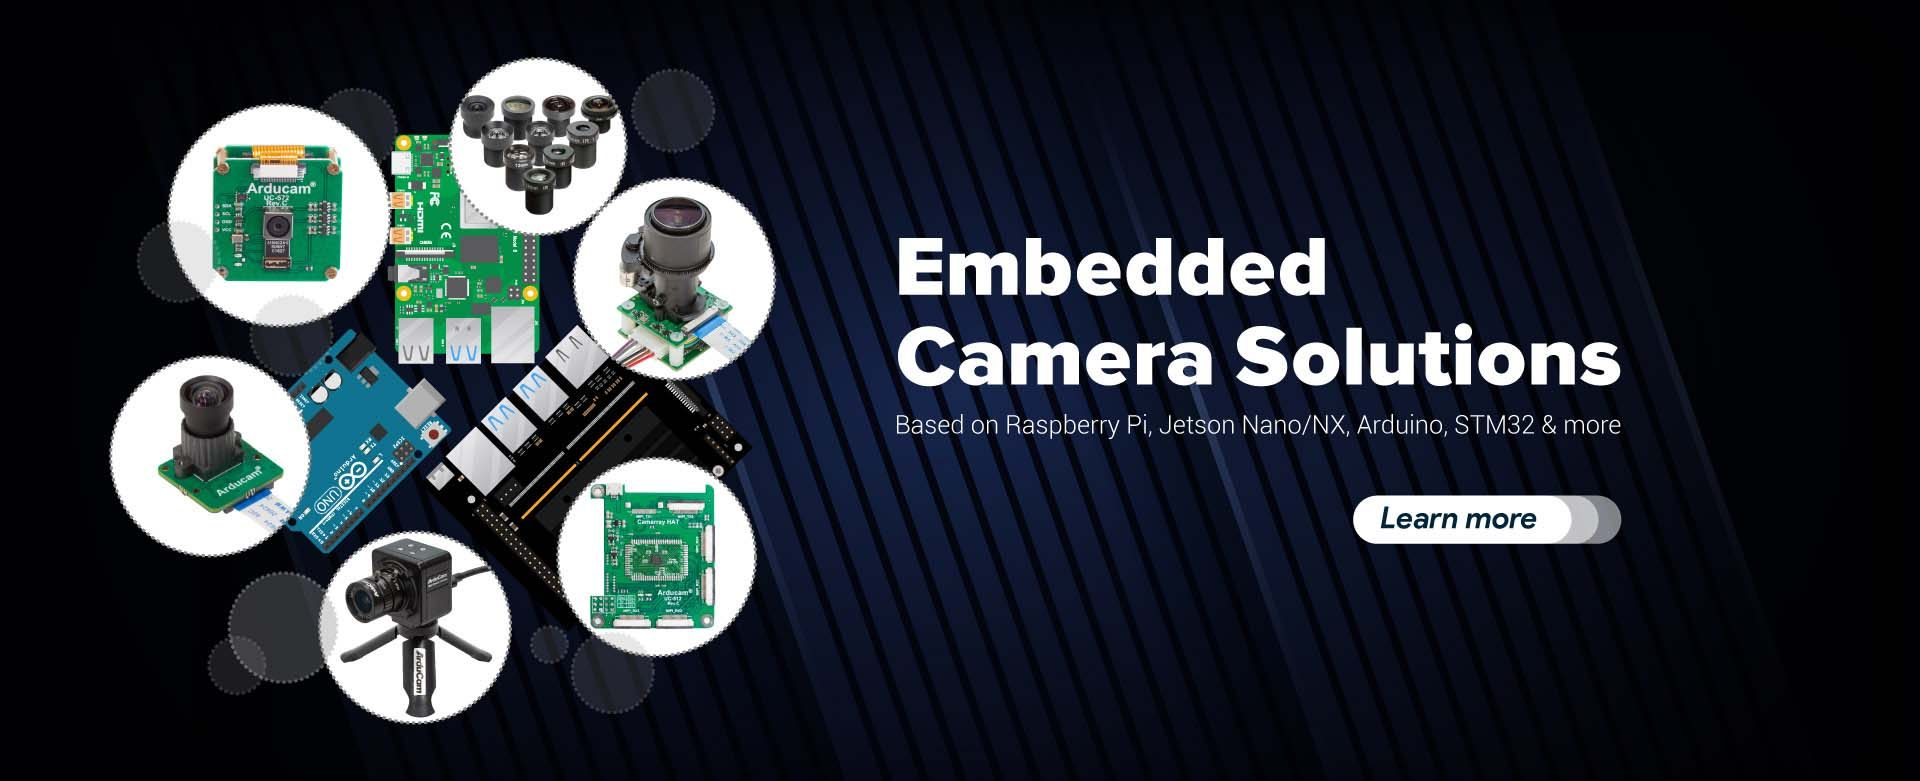 embedded camrera solutions and applications